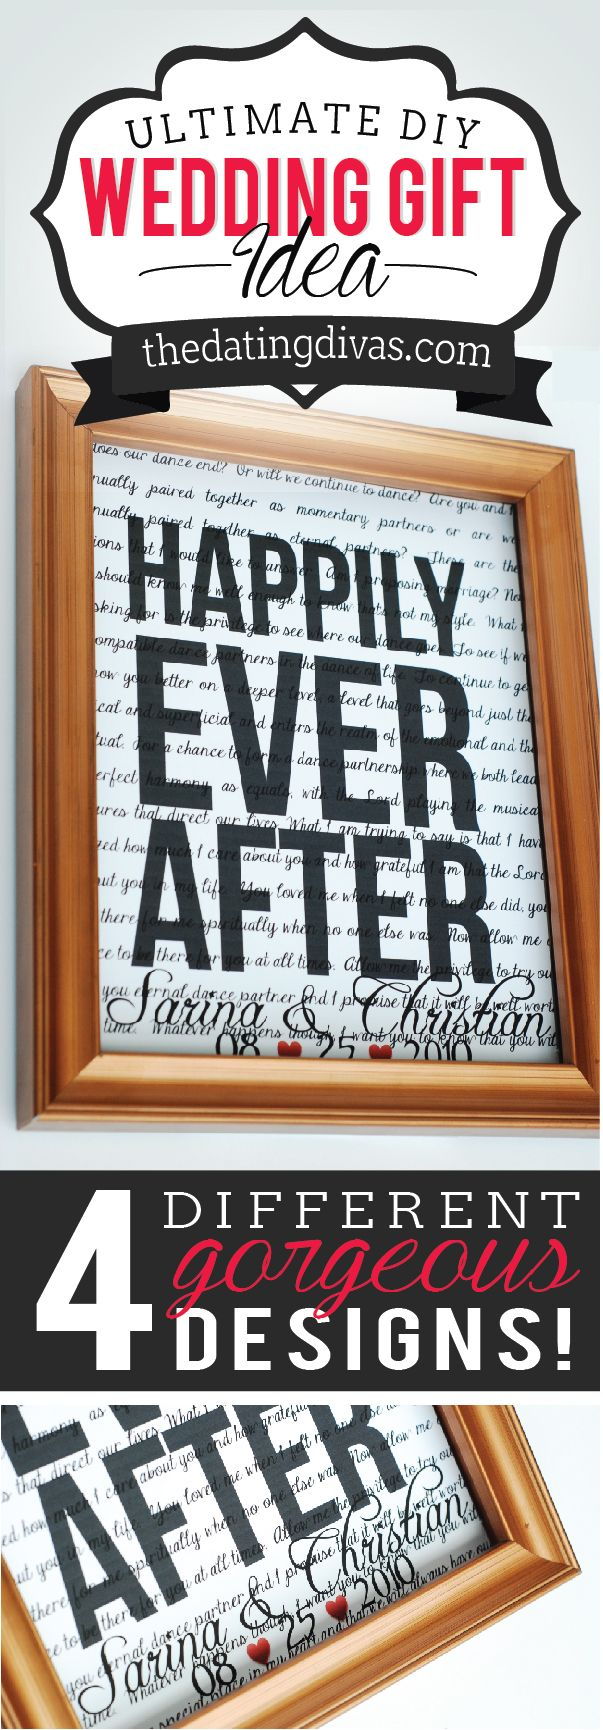 Make your own customized artwork to frame! The perfect wedding gift or home decor! www.TheDatingDivas.com